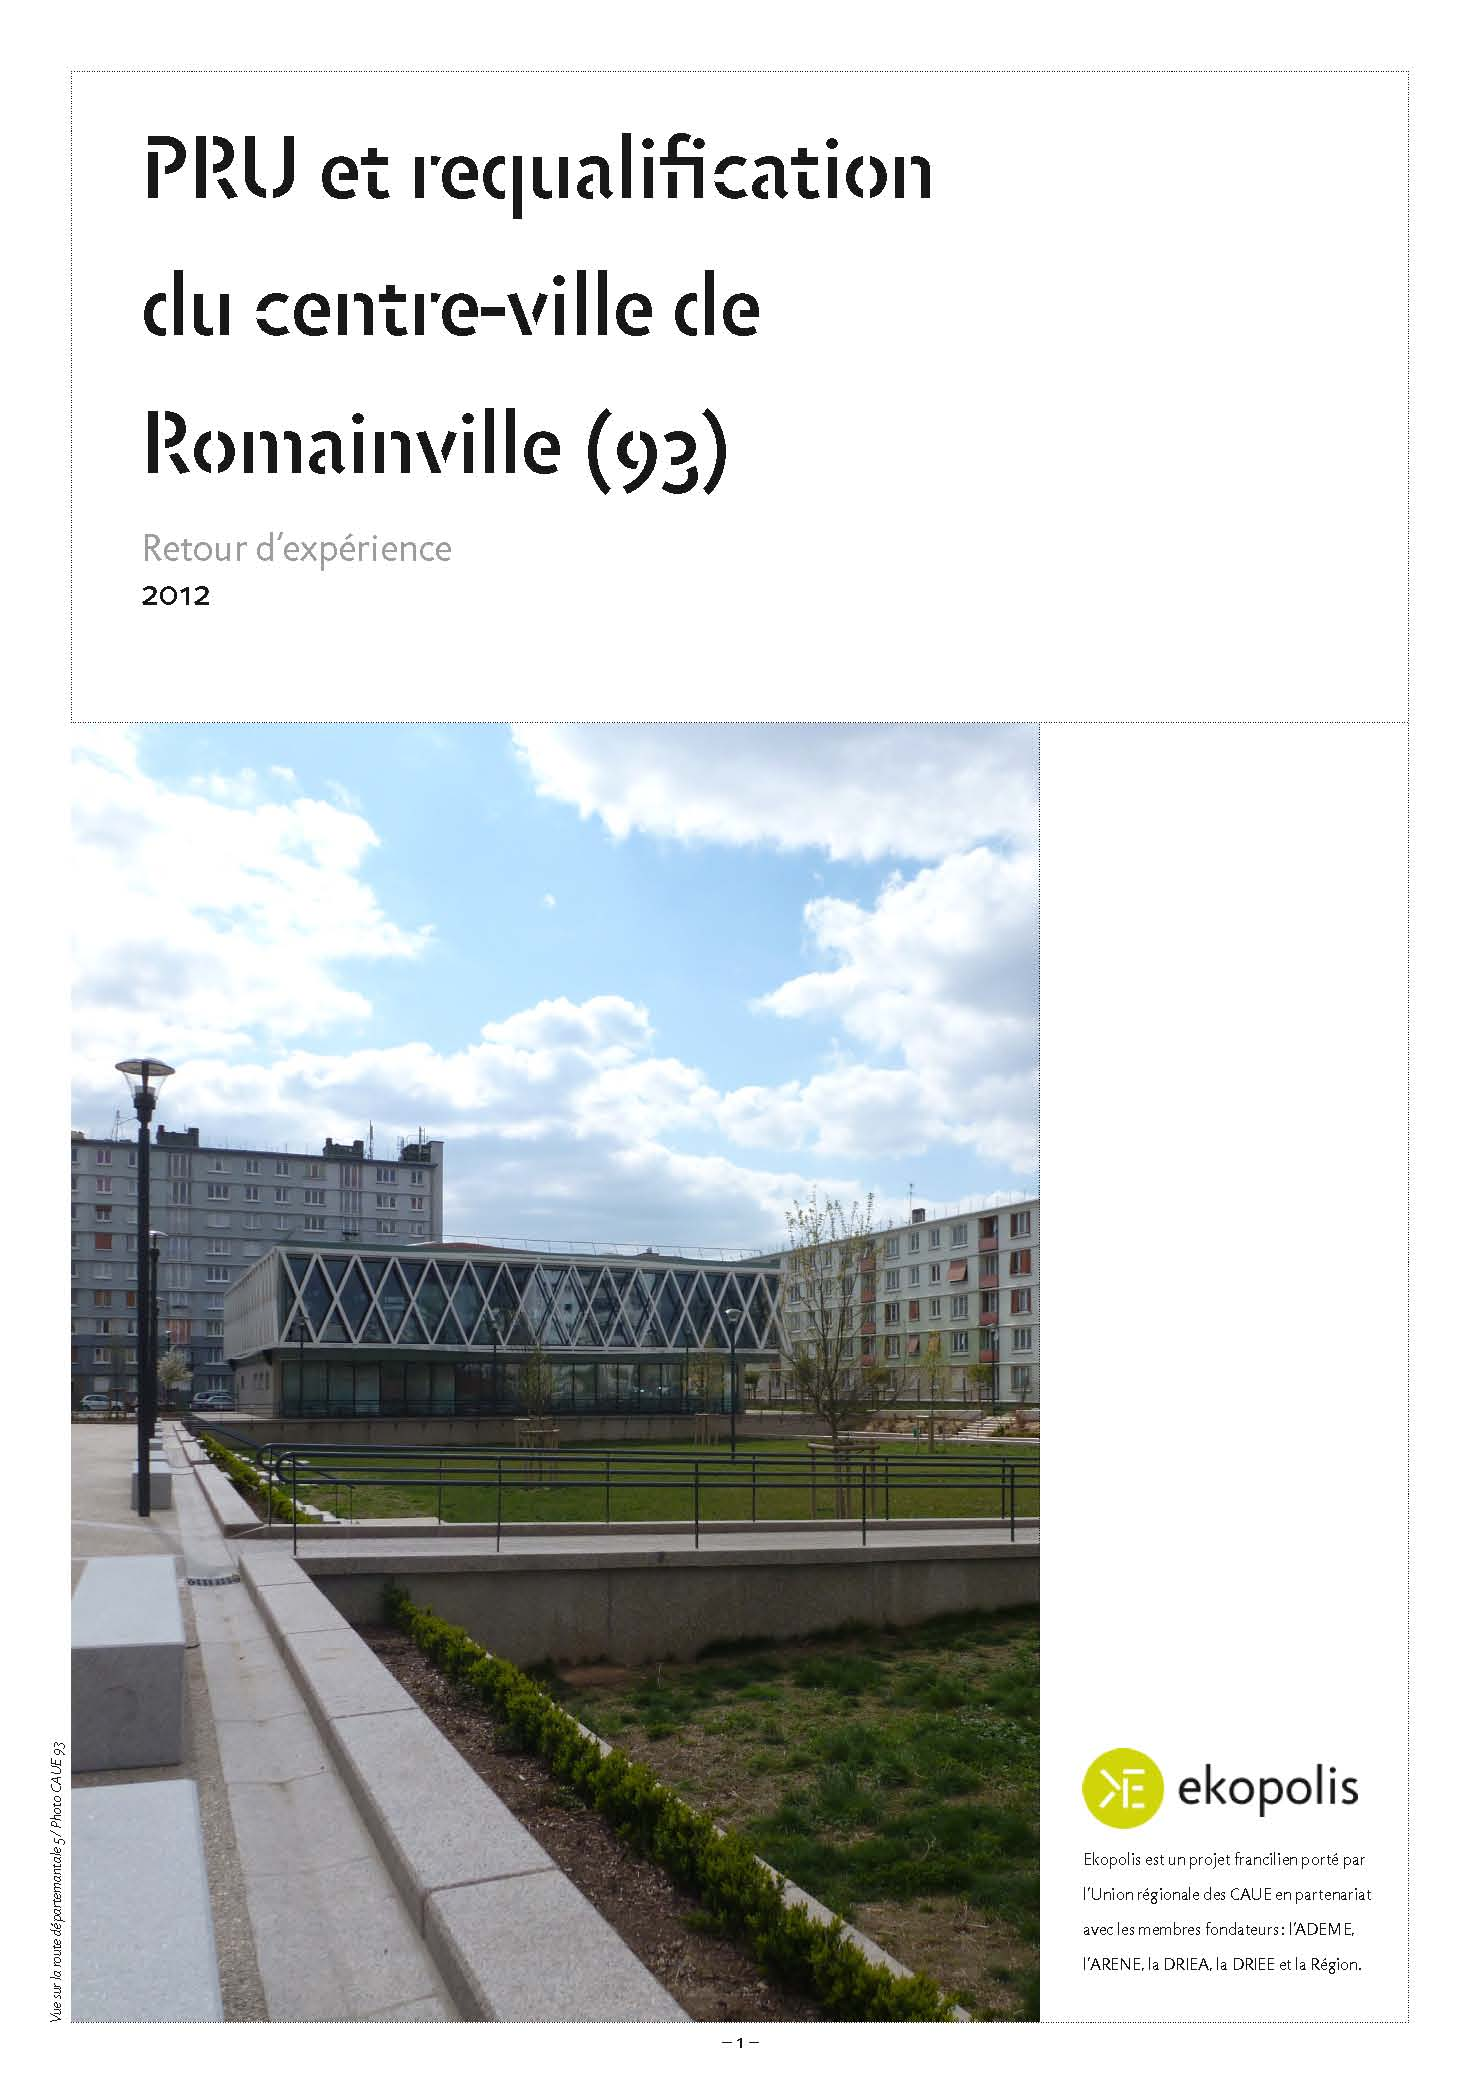 Couverture REX PRU et requalification du centre ville de Romainville